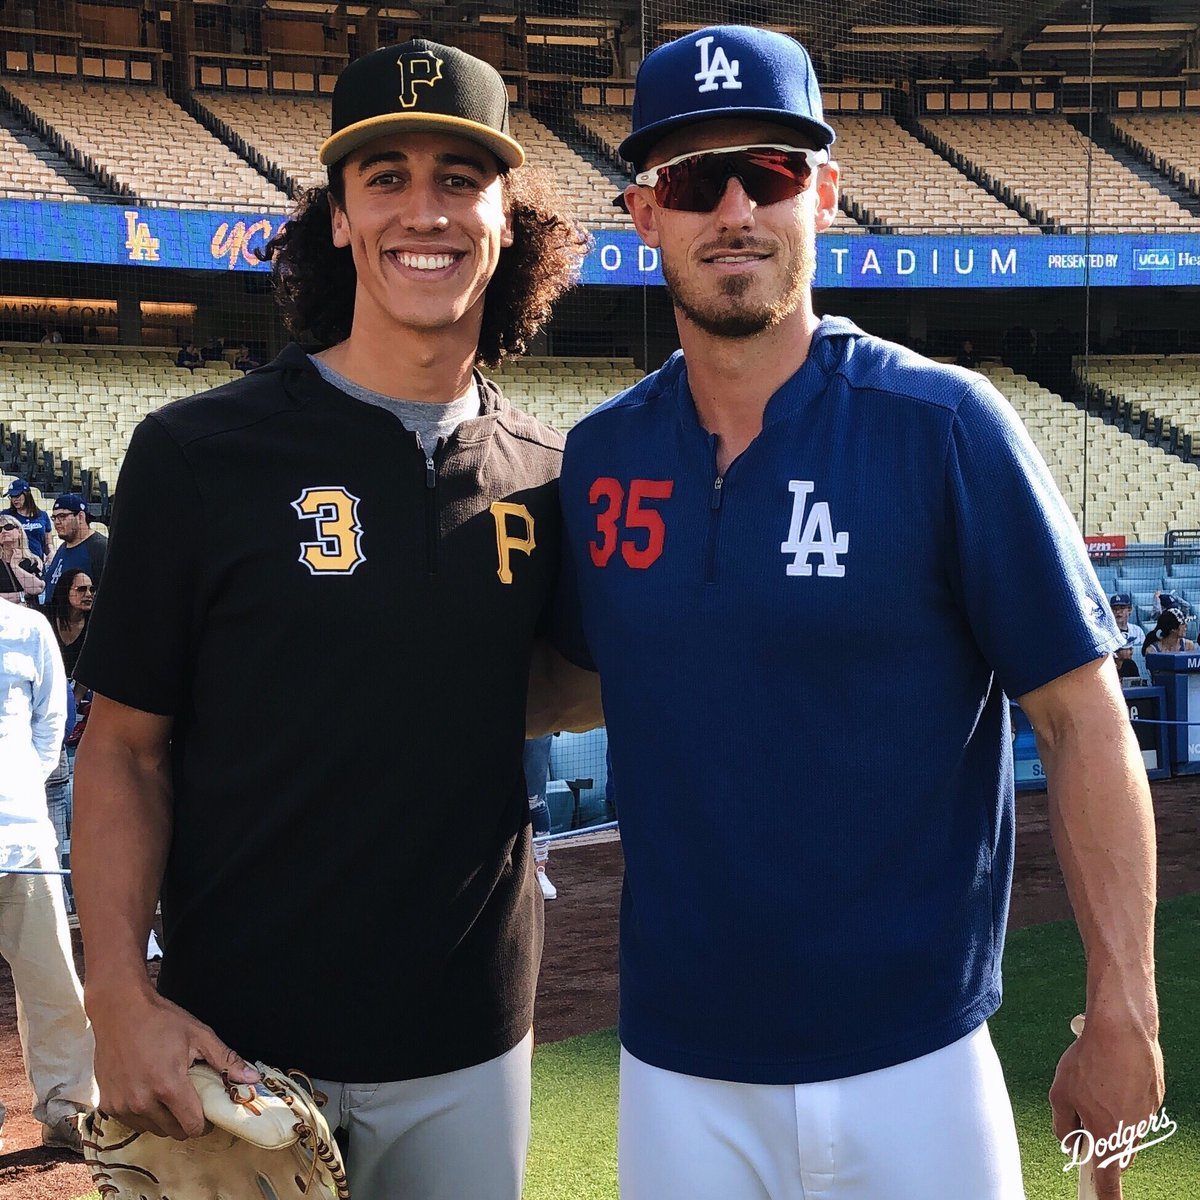 Playing against your childhood friend at Dodger Stadium? Just like they drew it up.